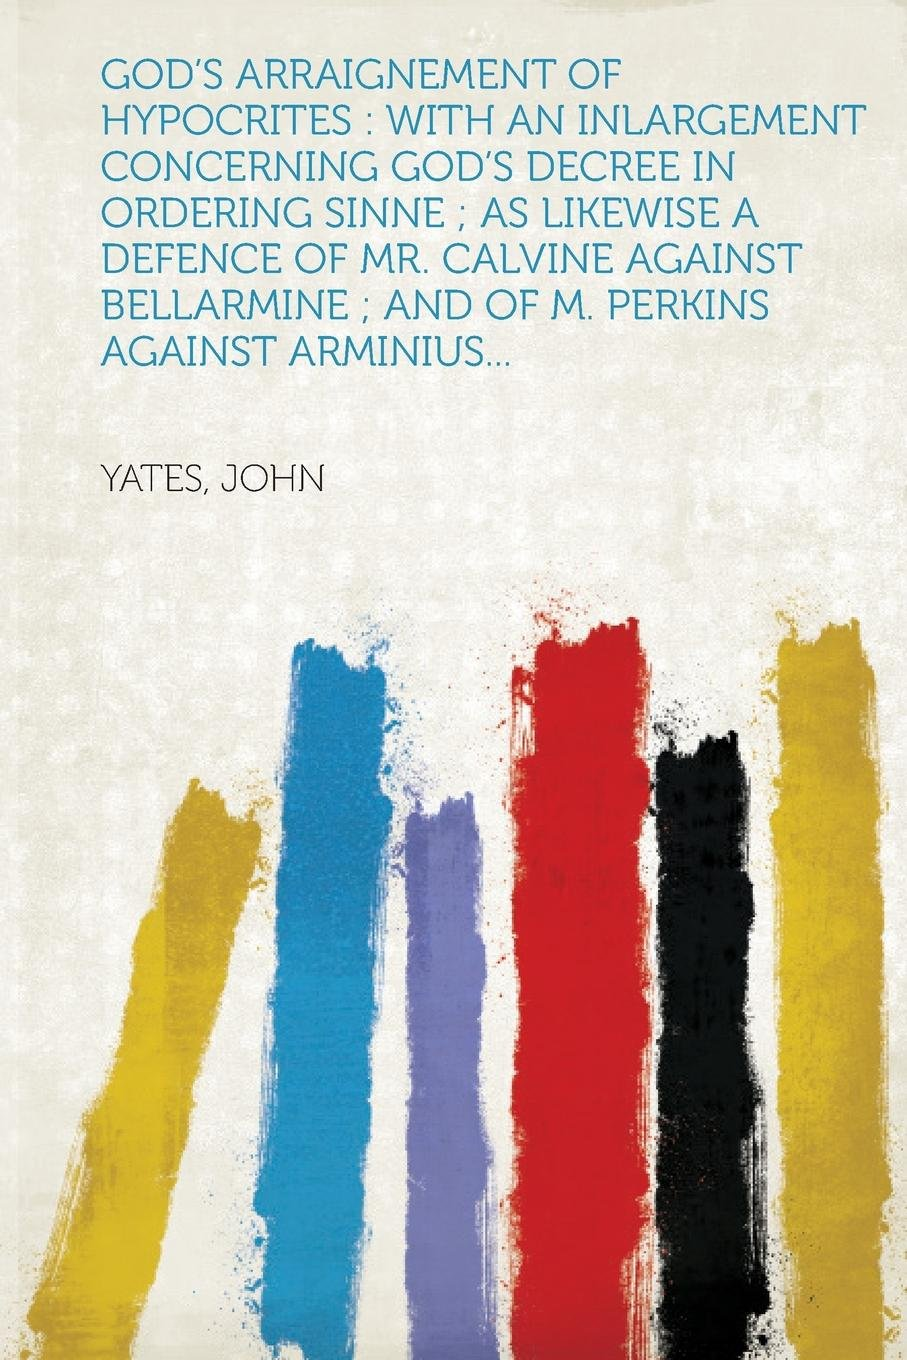 Download God's Arraignement of Hypocrites: With an Inlargement Concerning God's Decree in Ordering Sinne; As Likewise a Defence of Mr. Calvine Against Bellarmi pdf epub